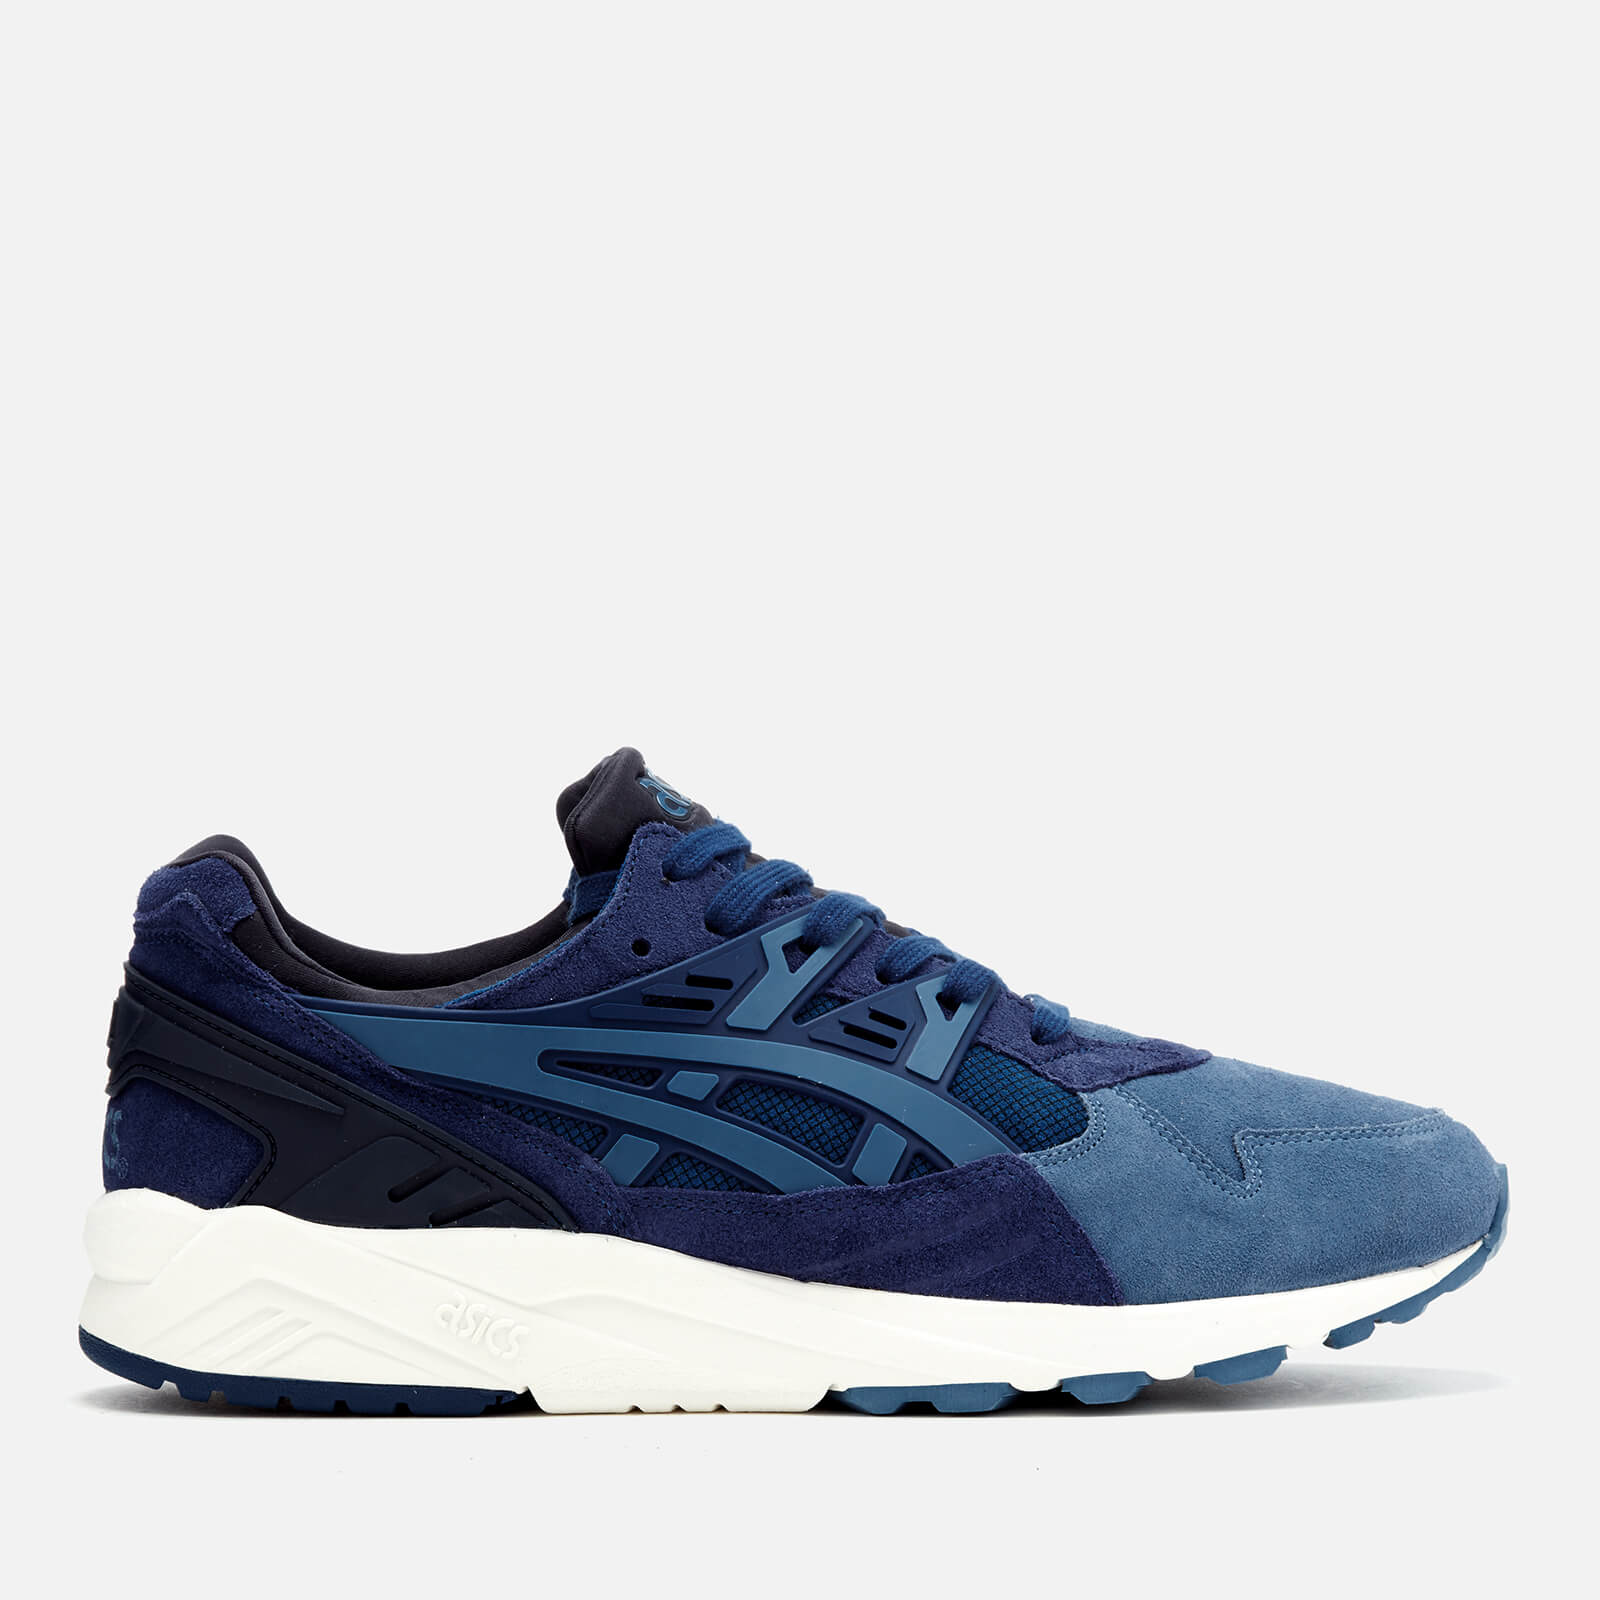 super popular 42d57 34ee6 Asics Lifestyle Men's Gel-Kayano Trainers - Navy Peony/Pigeon Blue